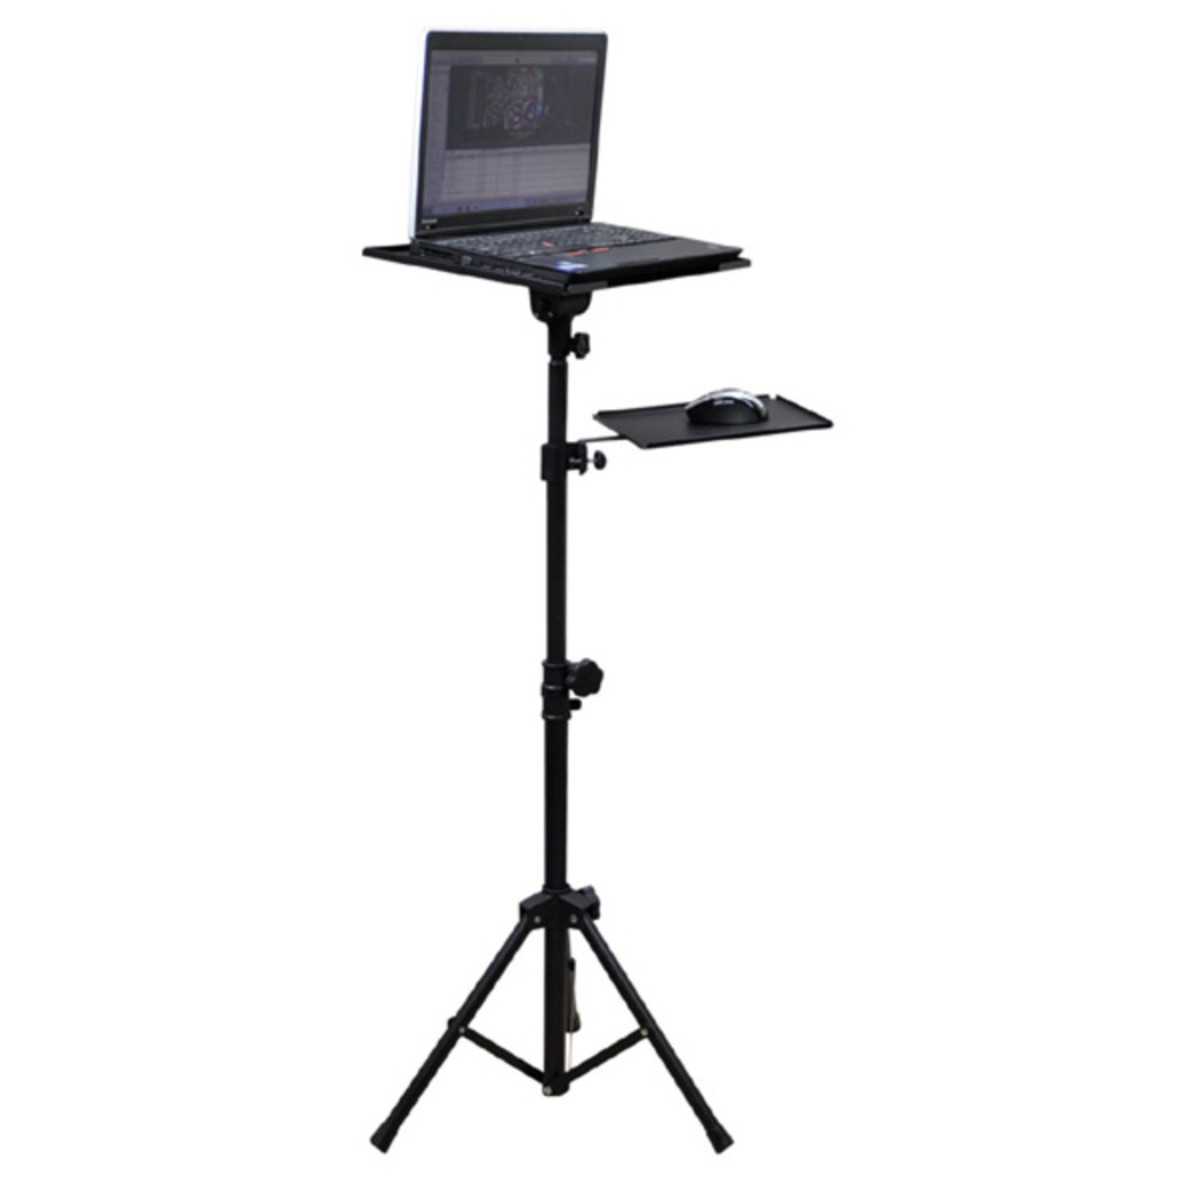 Electrovision Height Adjustable Tripod Laptop Stand With